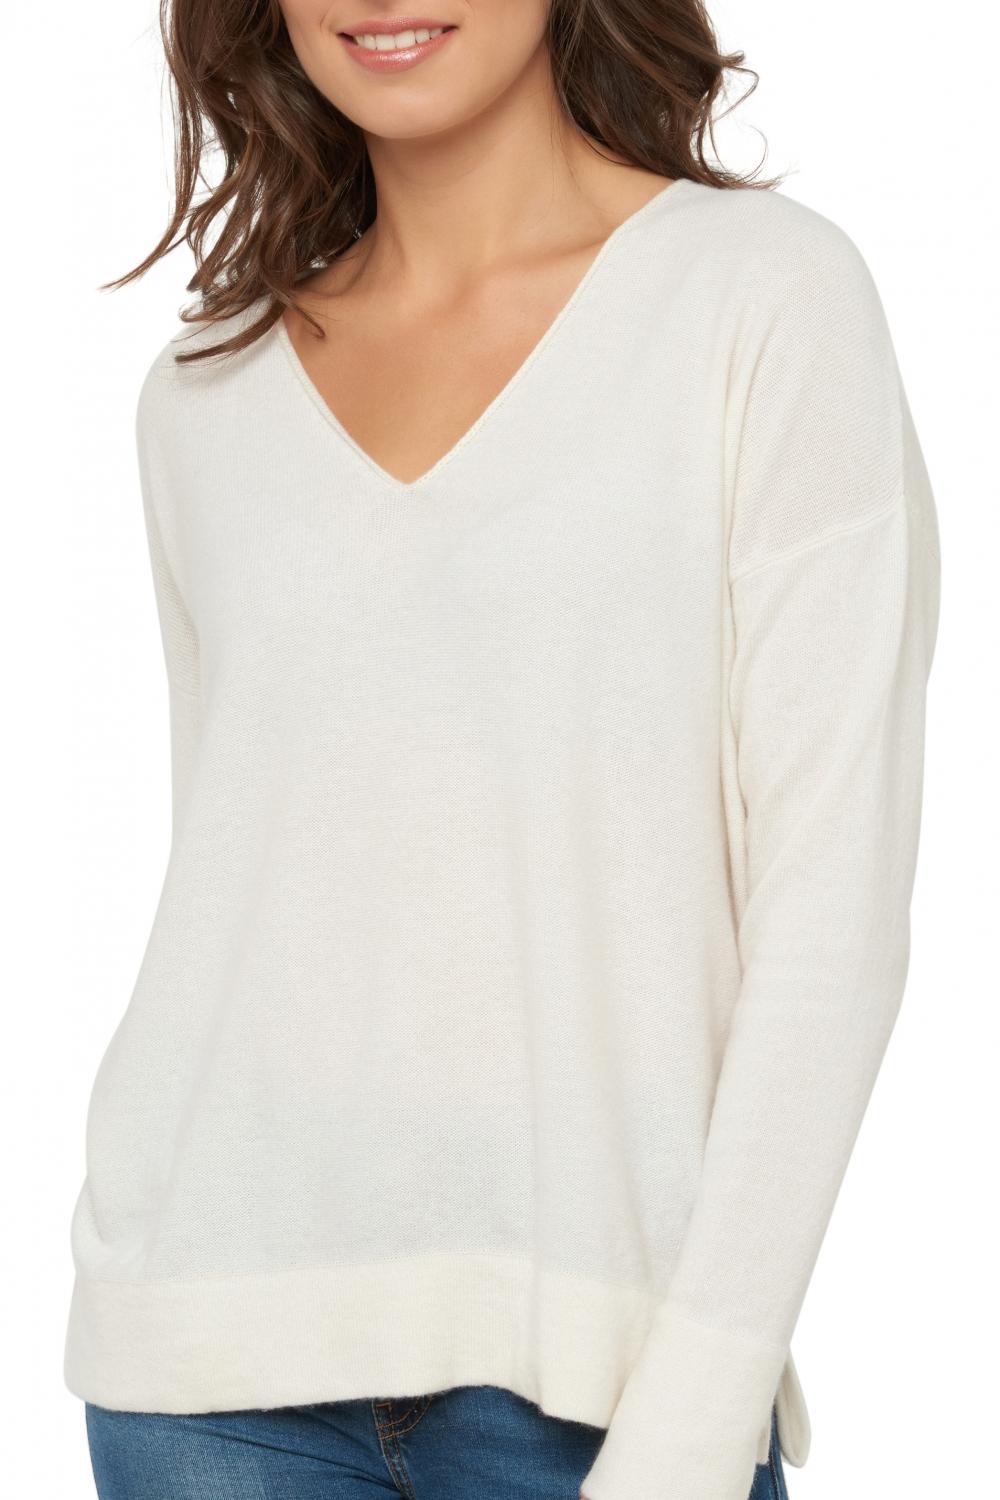 Cashmere ladies exclusive gersende off white s